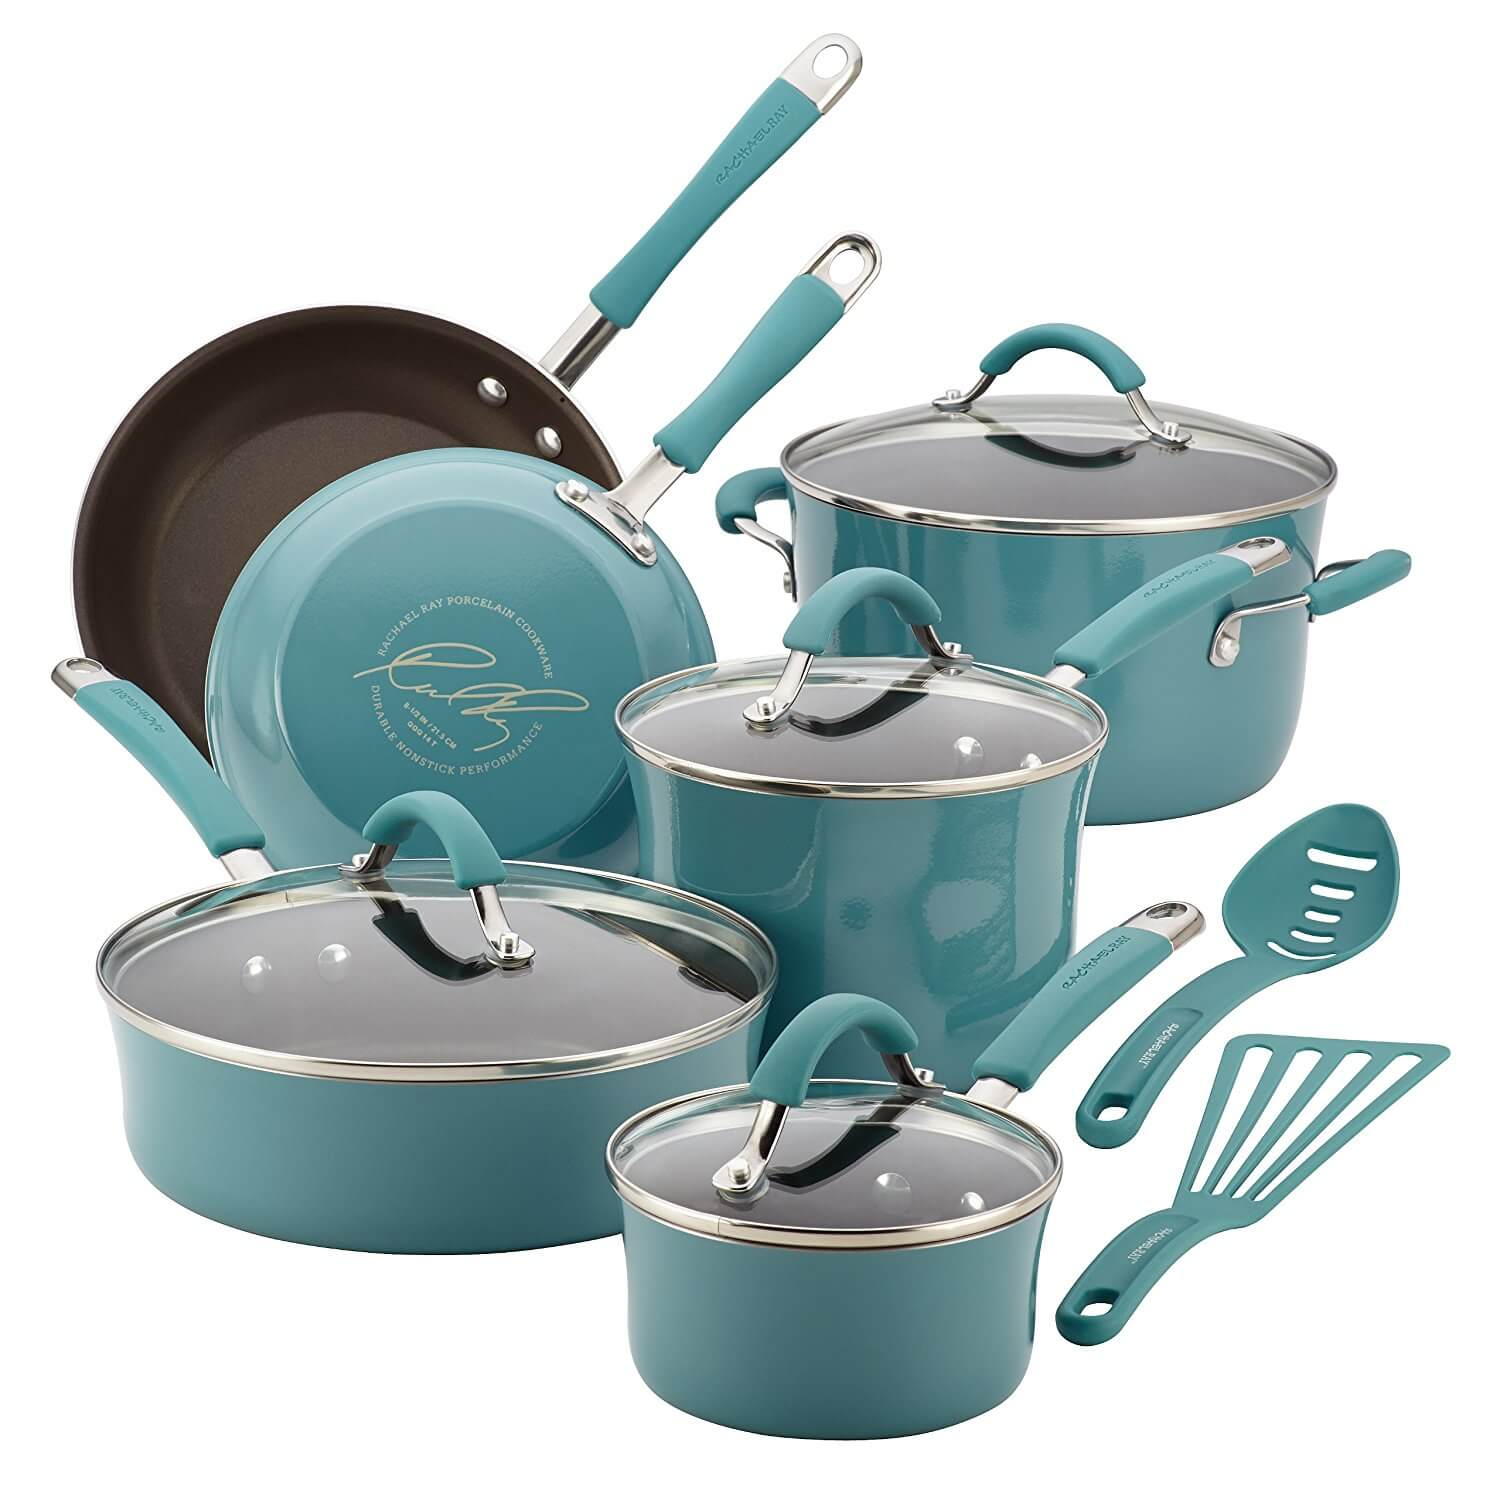 Your kitchen is going to need top quality pots and pans.